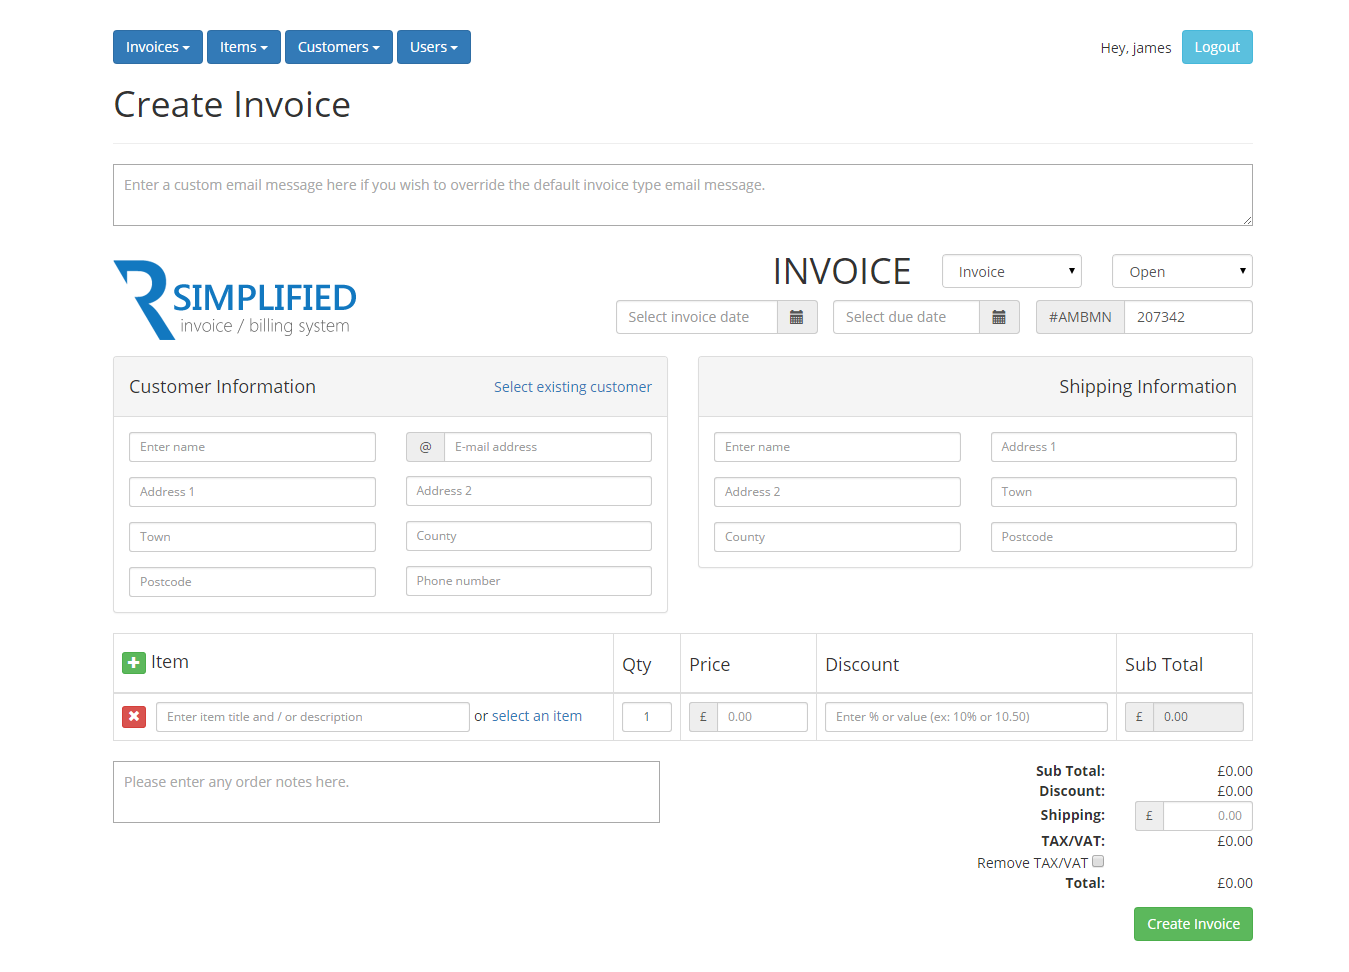 Darkfaderus  Marvelous Simplified Php Invoice  Billing System By Rebootdigitaluk  With Exciting  Createinvoicepng  With Nice Canadian Commercial Invoice Also Generic Invoice Form In Addition Find Invoice Price And Blank Invoice Printable As Well As Factoring Invoice Additionally Send Invoices From Codecanyonnet With Darkfaderus  Exciting Simplified Php Invoice  Billing System By Rebootdigitaluk  With Nice  Createinvoicepng  And Marvelous Canadian Commercial Invoice Also Generic Invoice Form In Addition Find Invoice Price From Codecanyonnet